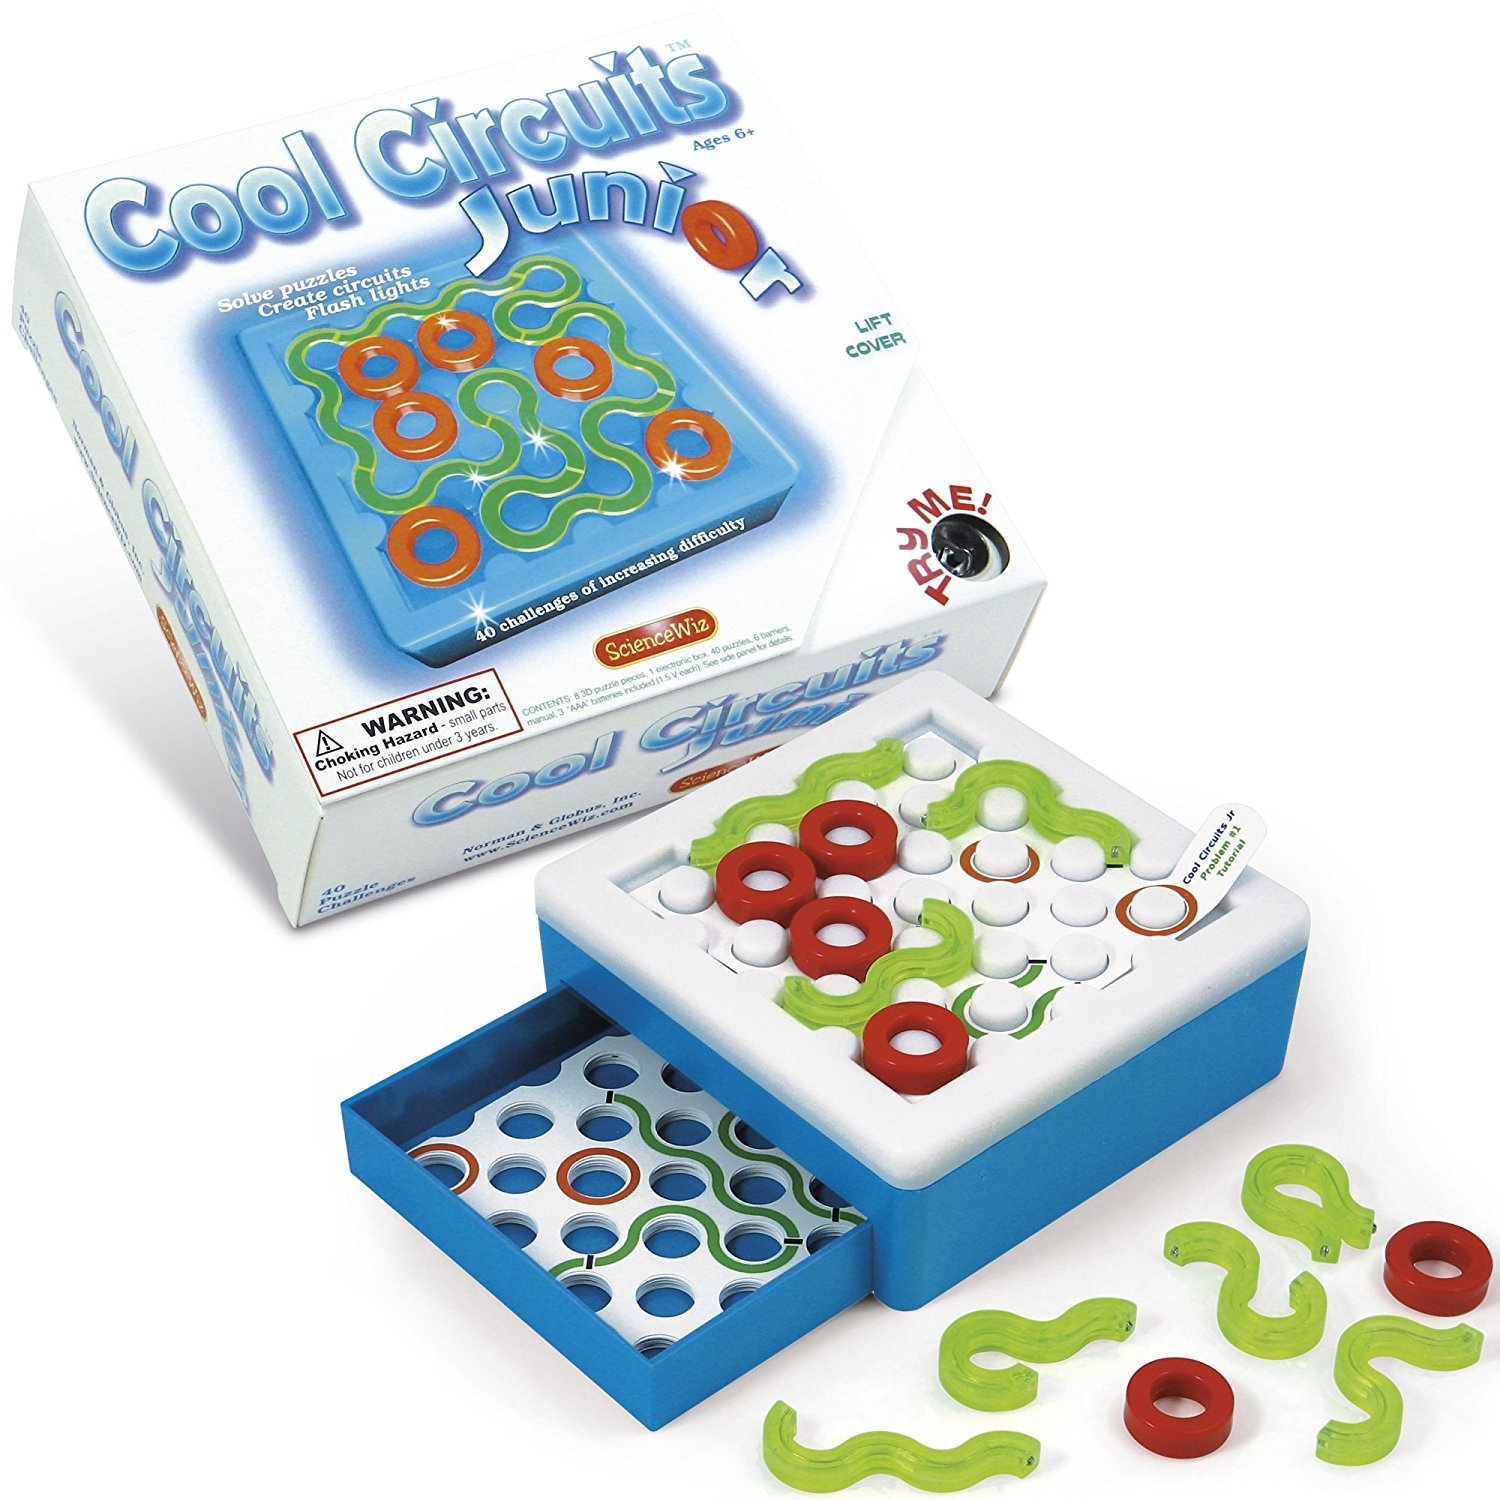 Cool Circuits Junior Edition Toy At Mighty Ape Nz Electronic Circuit Jr Image